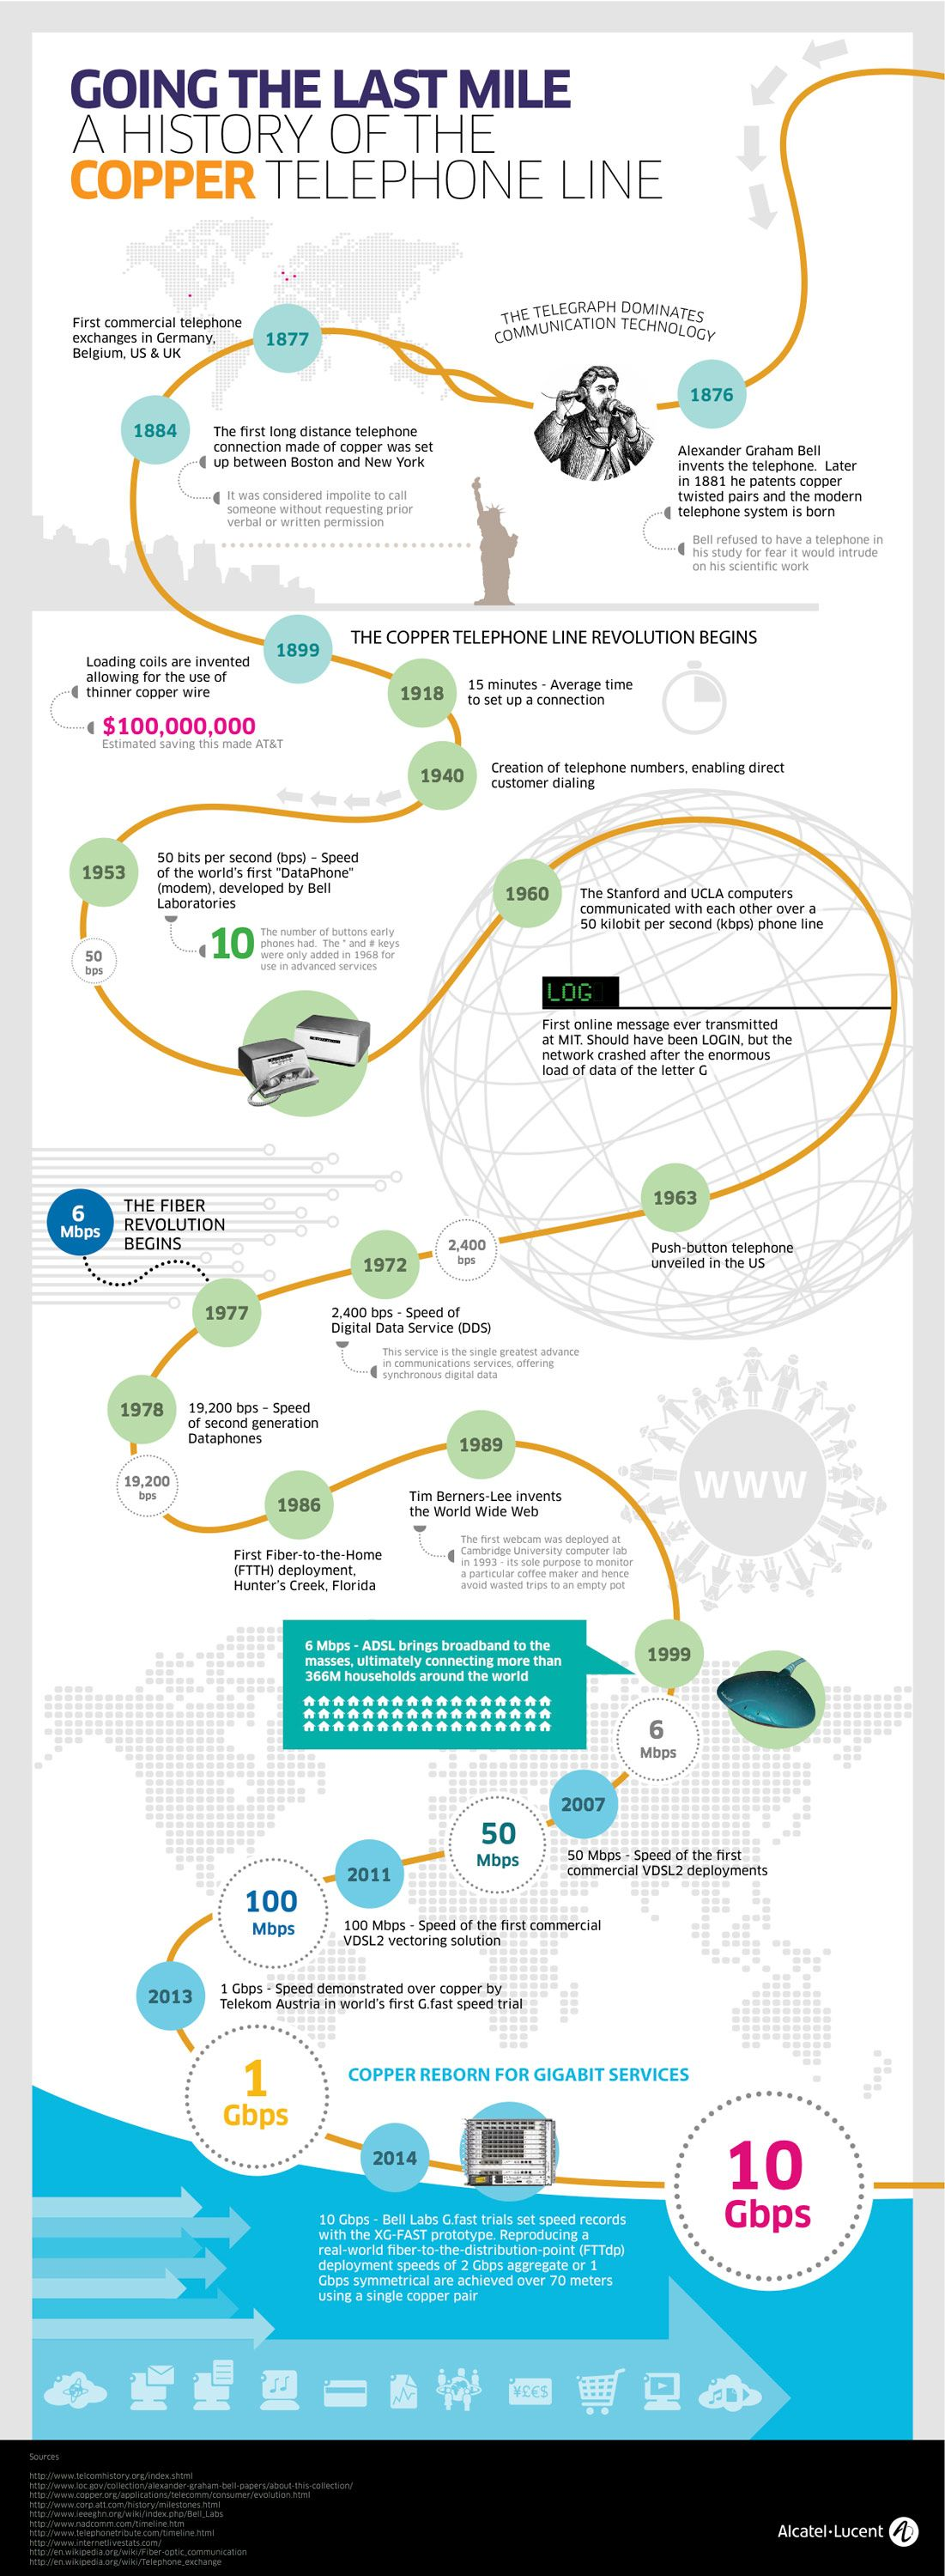 As Alcatel Lucent Announces A New World Record Broadband Speed Of 10 Gbps This Infographic Charts The Long And Illustriou Telephone Line Infographic Last Mile